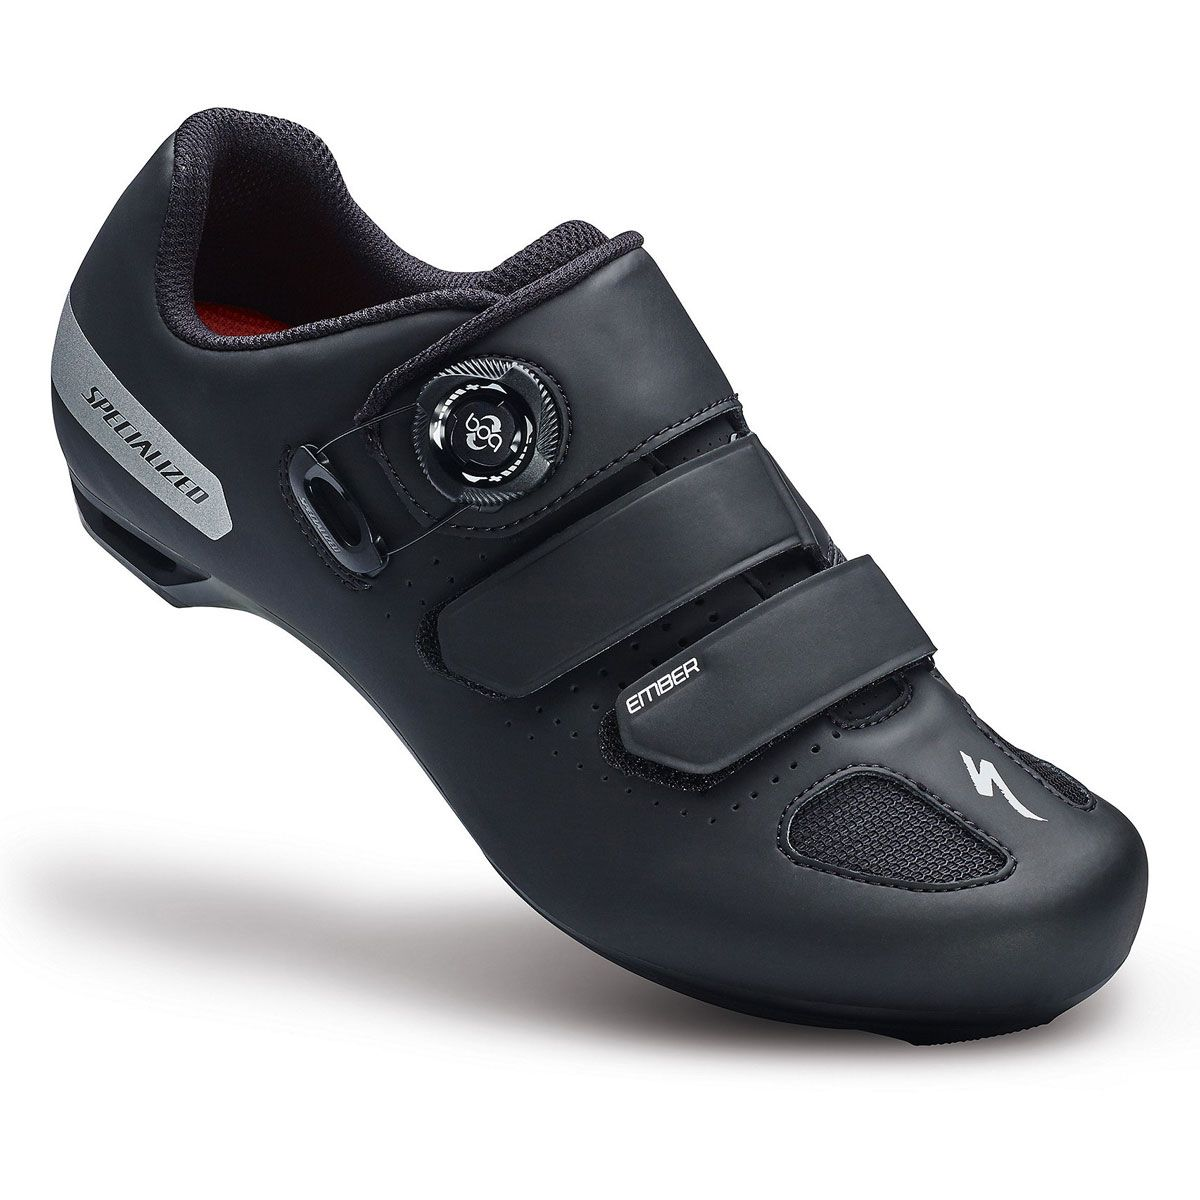 Chaussures Specialized Ember femmes